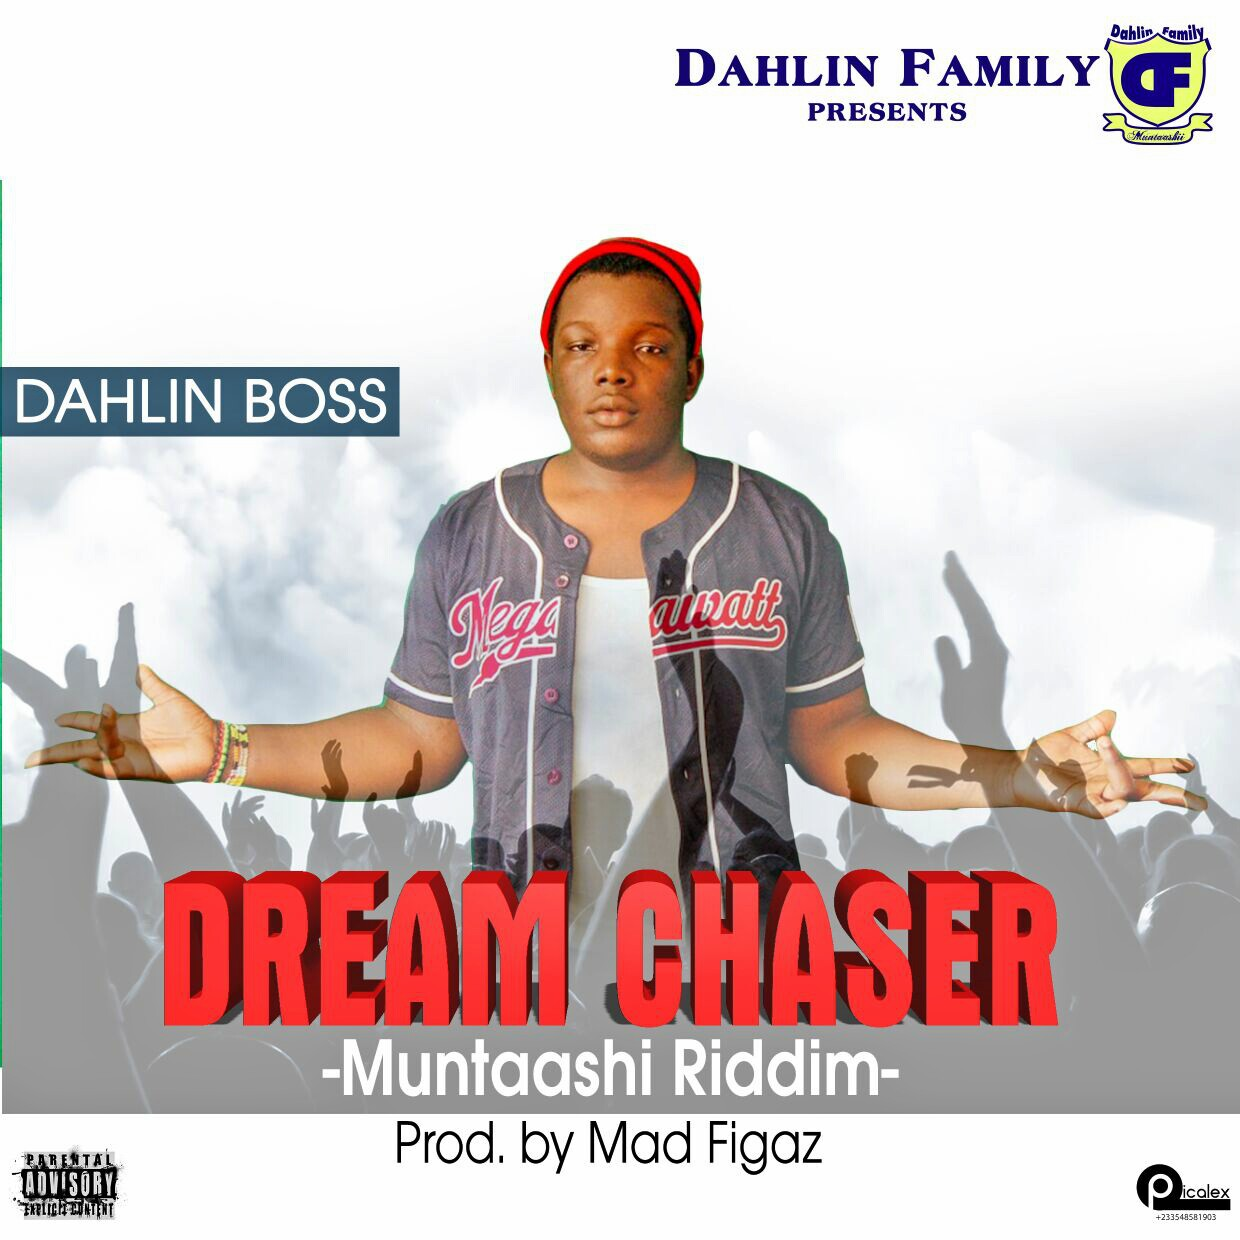 DAHLIN BOSS – DREAM CHASER (MUNTASHI RIDDIM) PRODBY MAD FIGAS